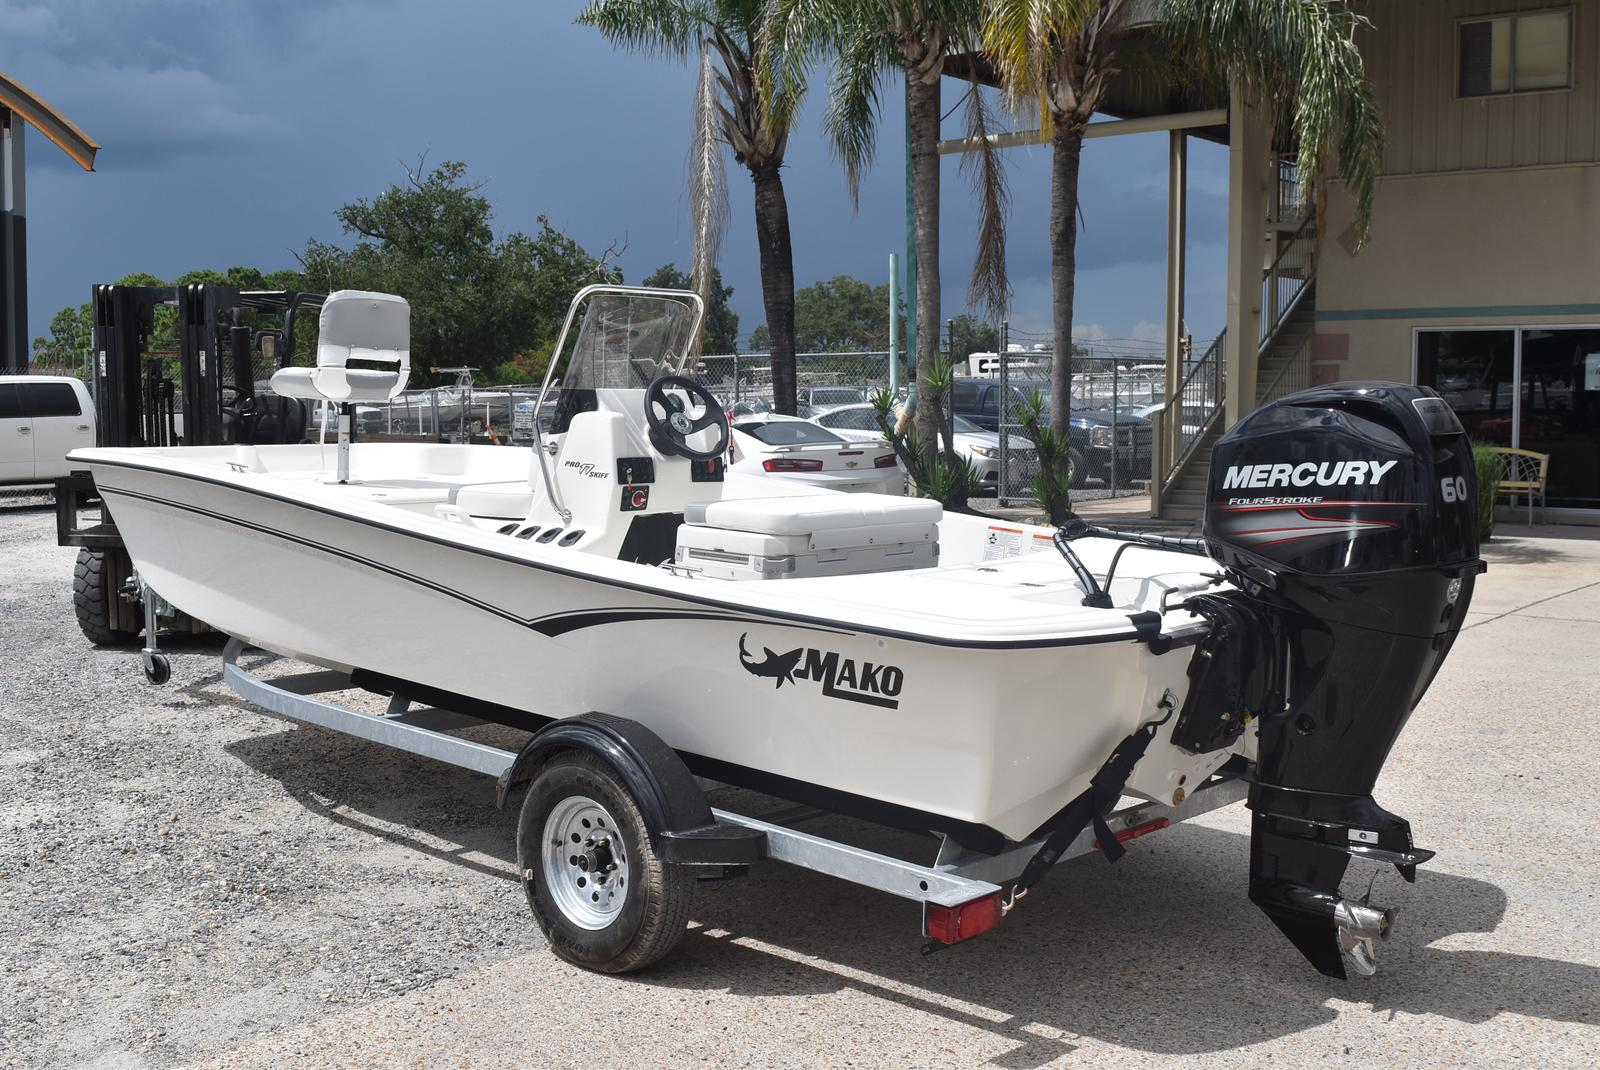 2020 Mako boat for sale, model of the boat is Pro Skiff 17, 75 ELPT & Image # 186 of 702